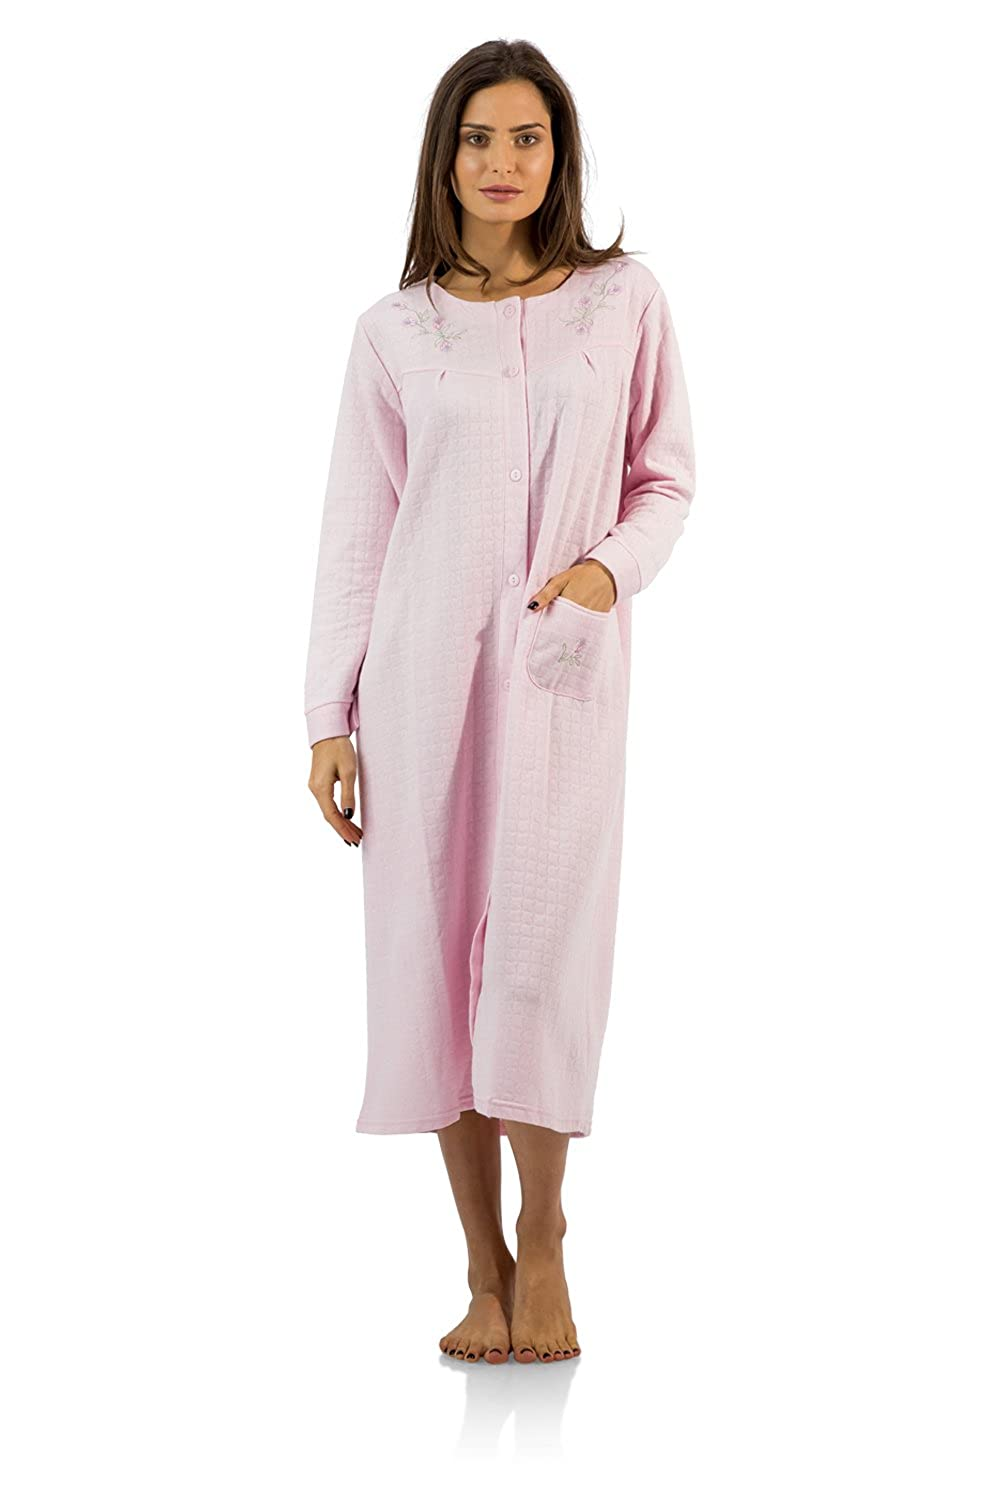 Casual Nights Women's Long Quilted Robe House Dress Long Sleeve Lounger